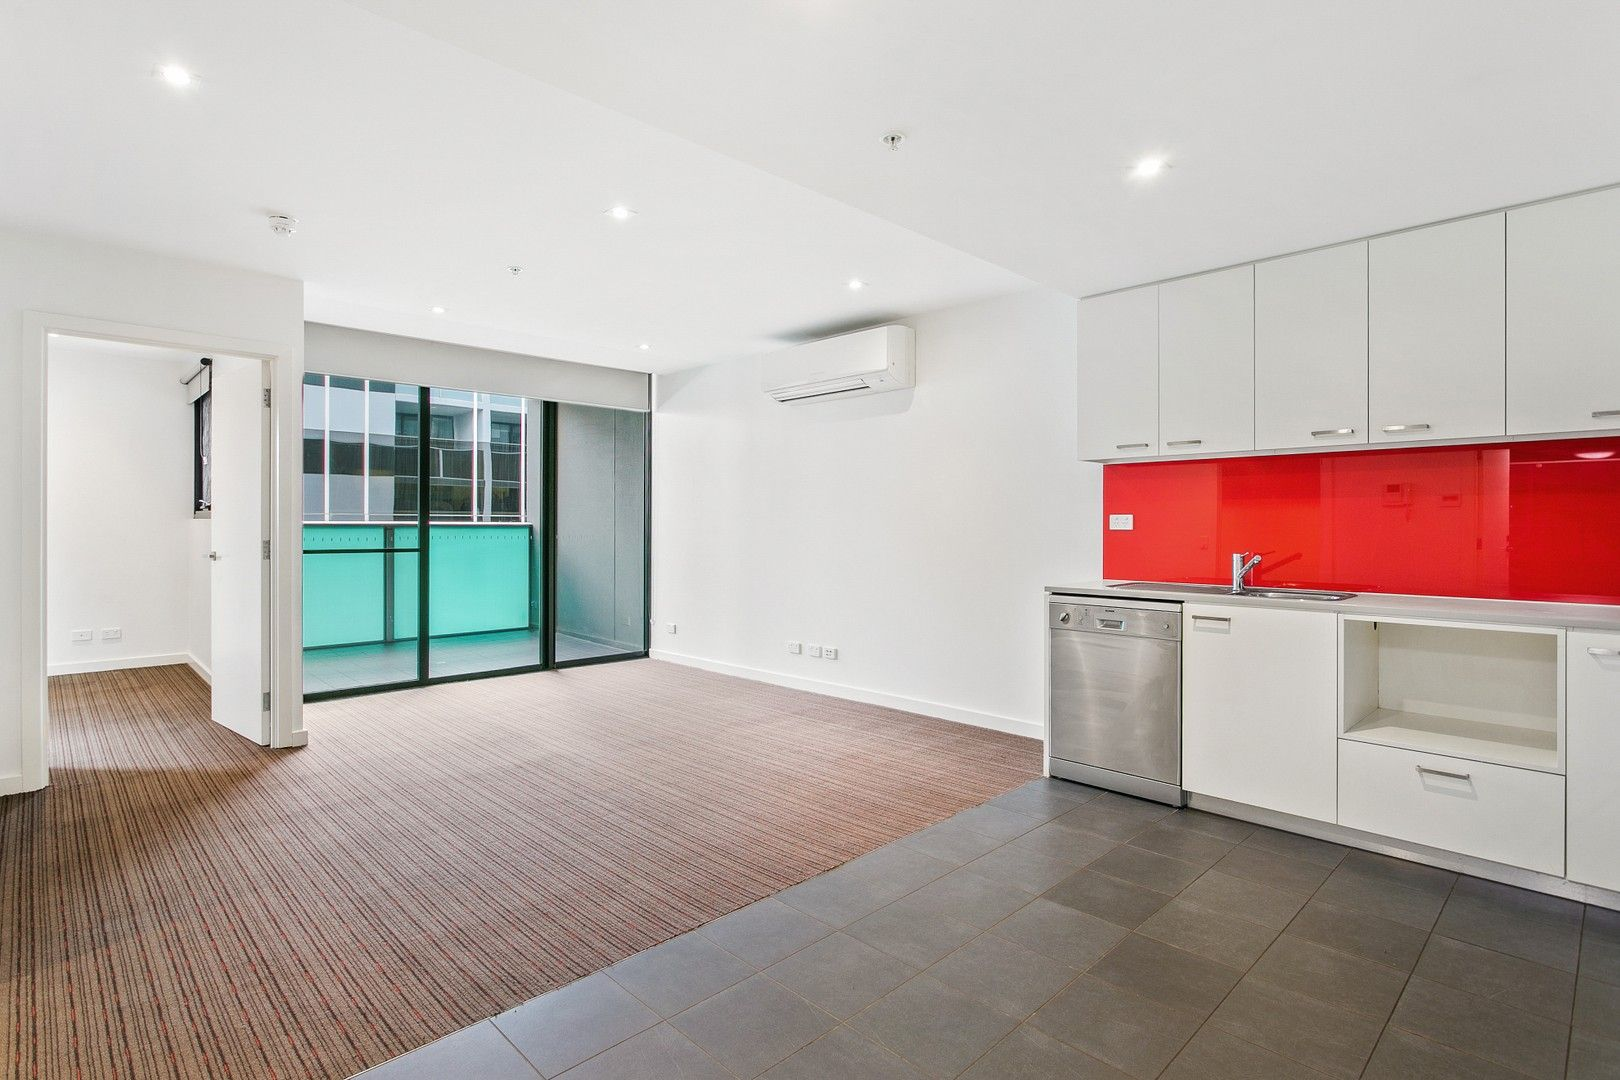 2 bedrooms Apartment / Unit / Flat in 1303/102 Waymouth Street ADELAIDE SA, 5000